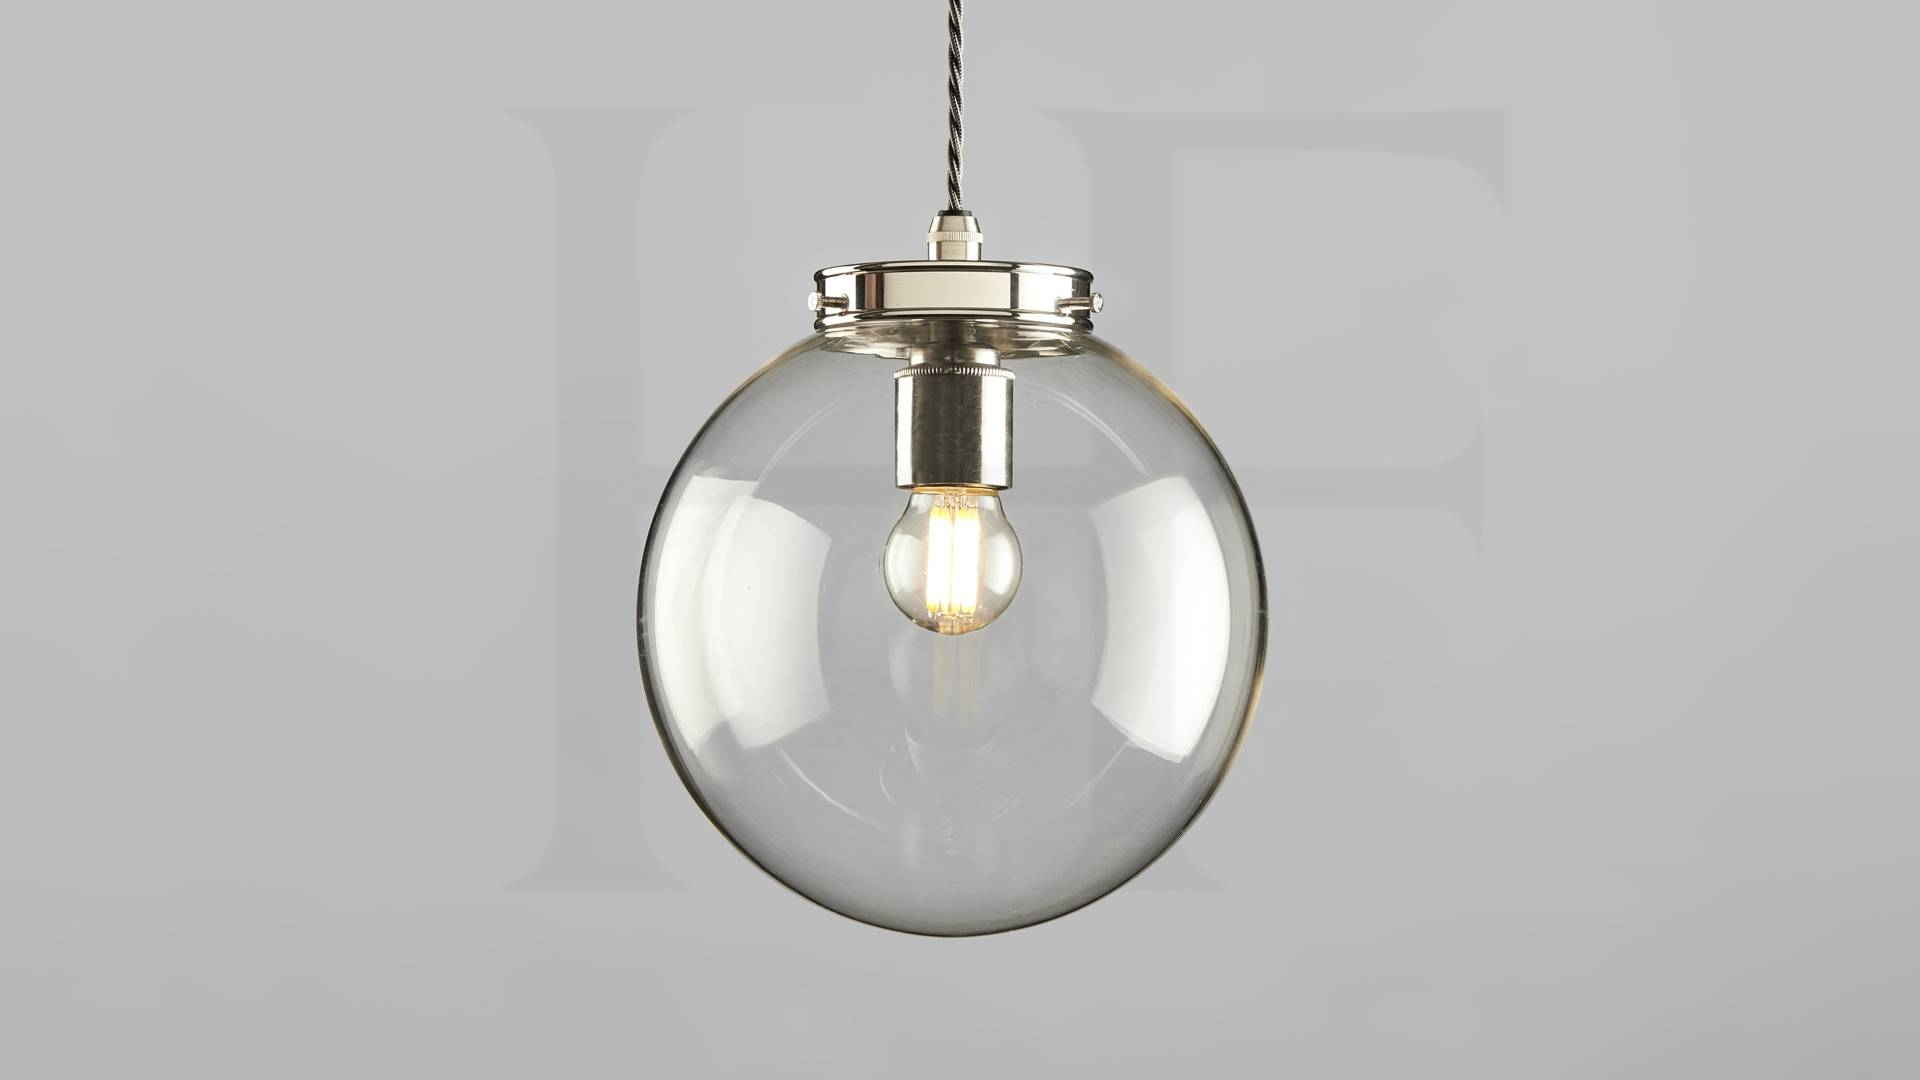 Hector Mini Globe Pendant, Clear Glasshector Finch Lighting pertaining to Glass Ball Pendant Lights Uk (Image 10 of 15)